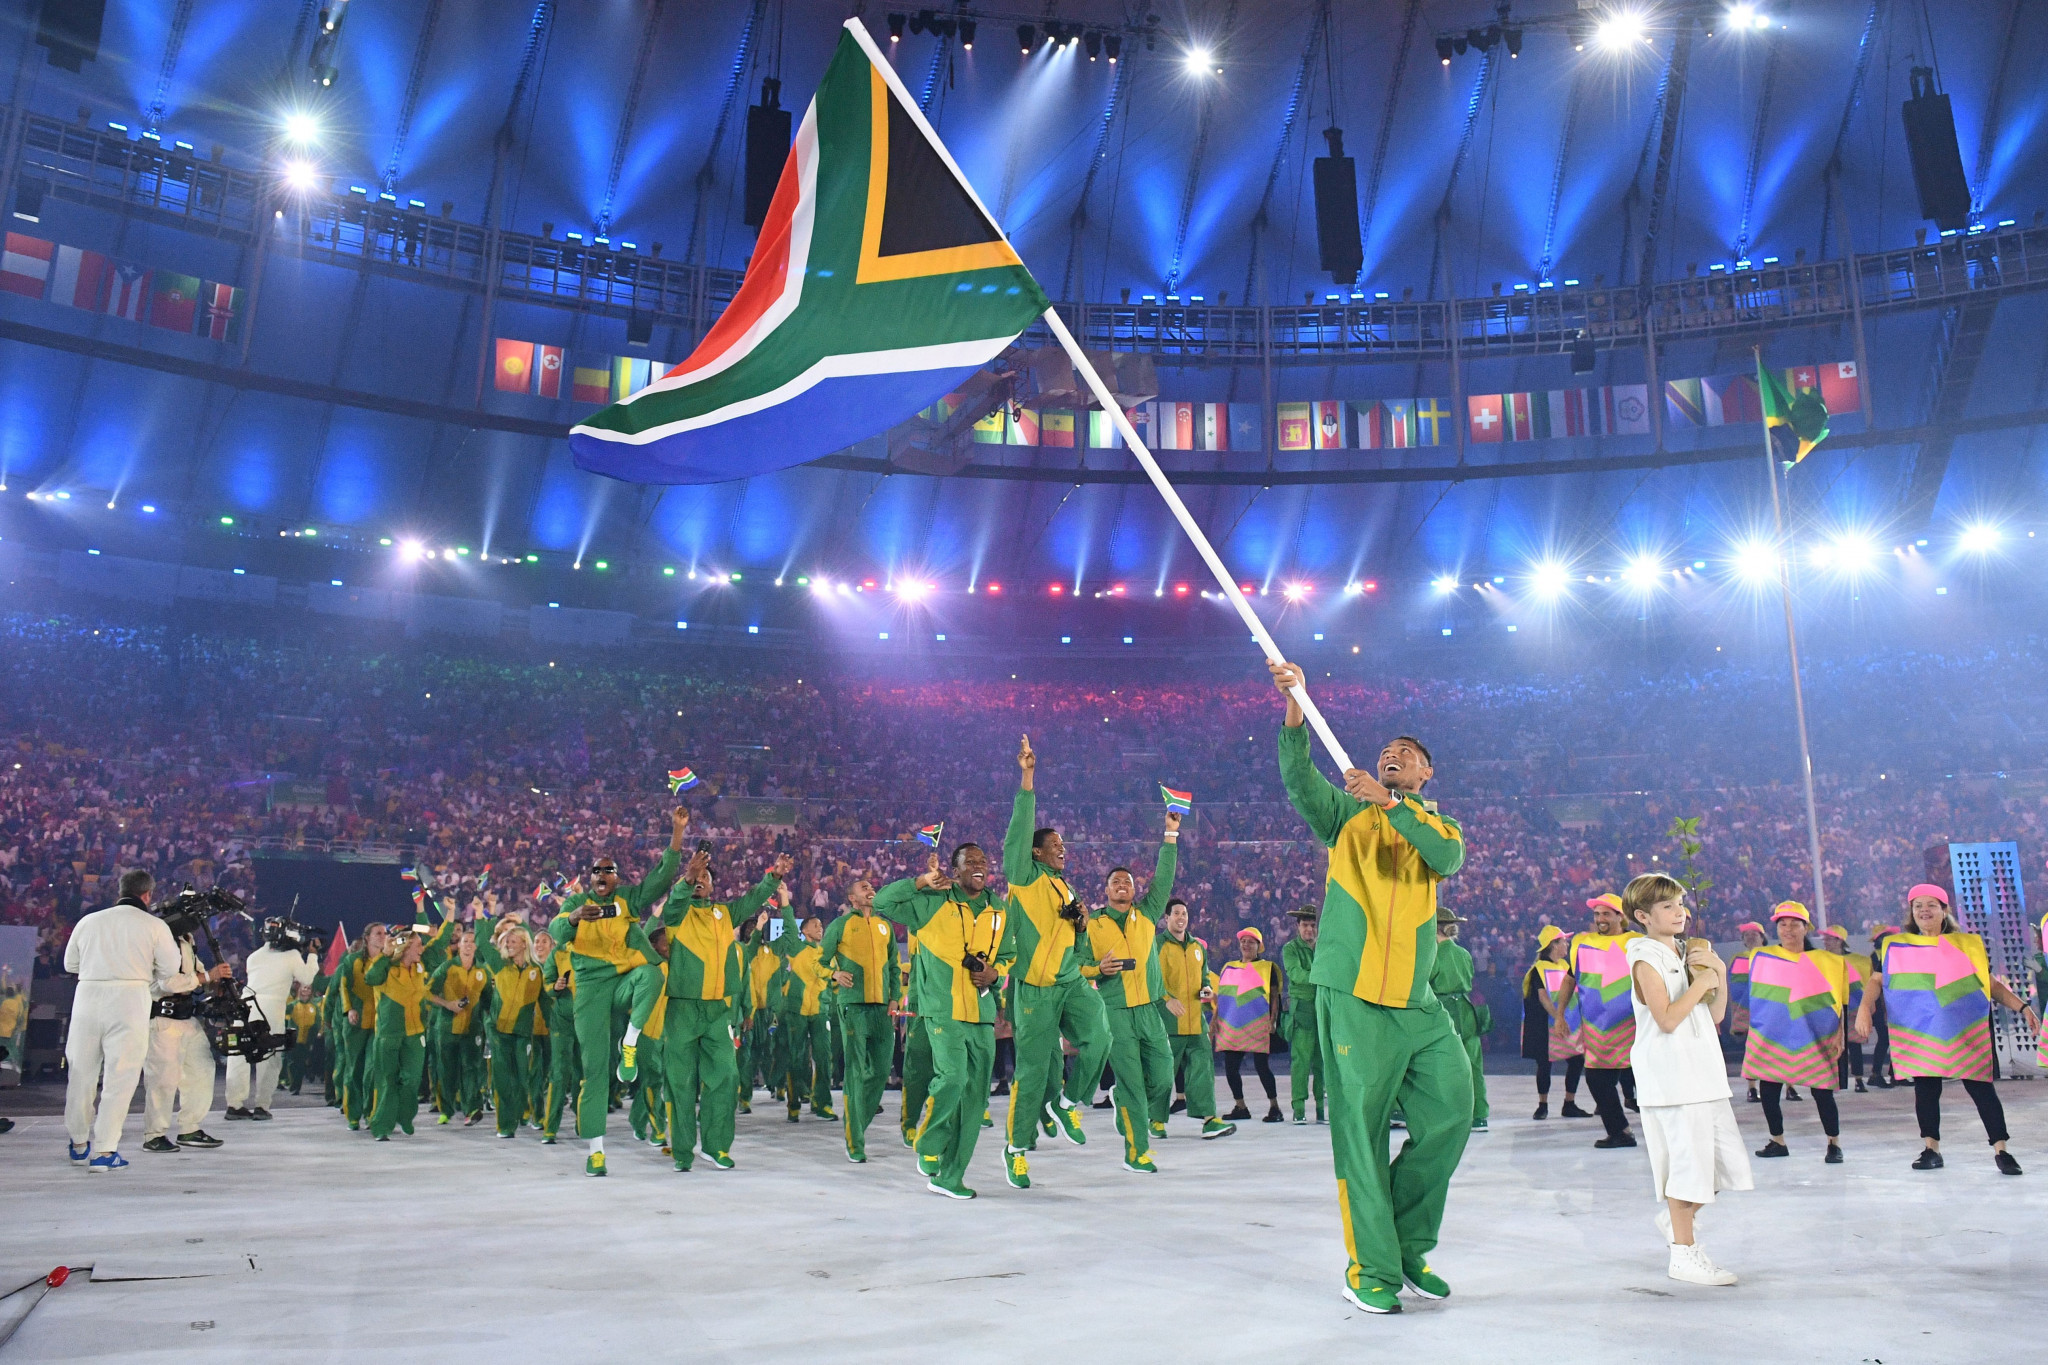 South African athletes to receive single-jab COVID-19 vaccine due to delay in receiving IOC supply